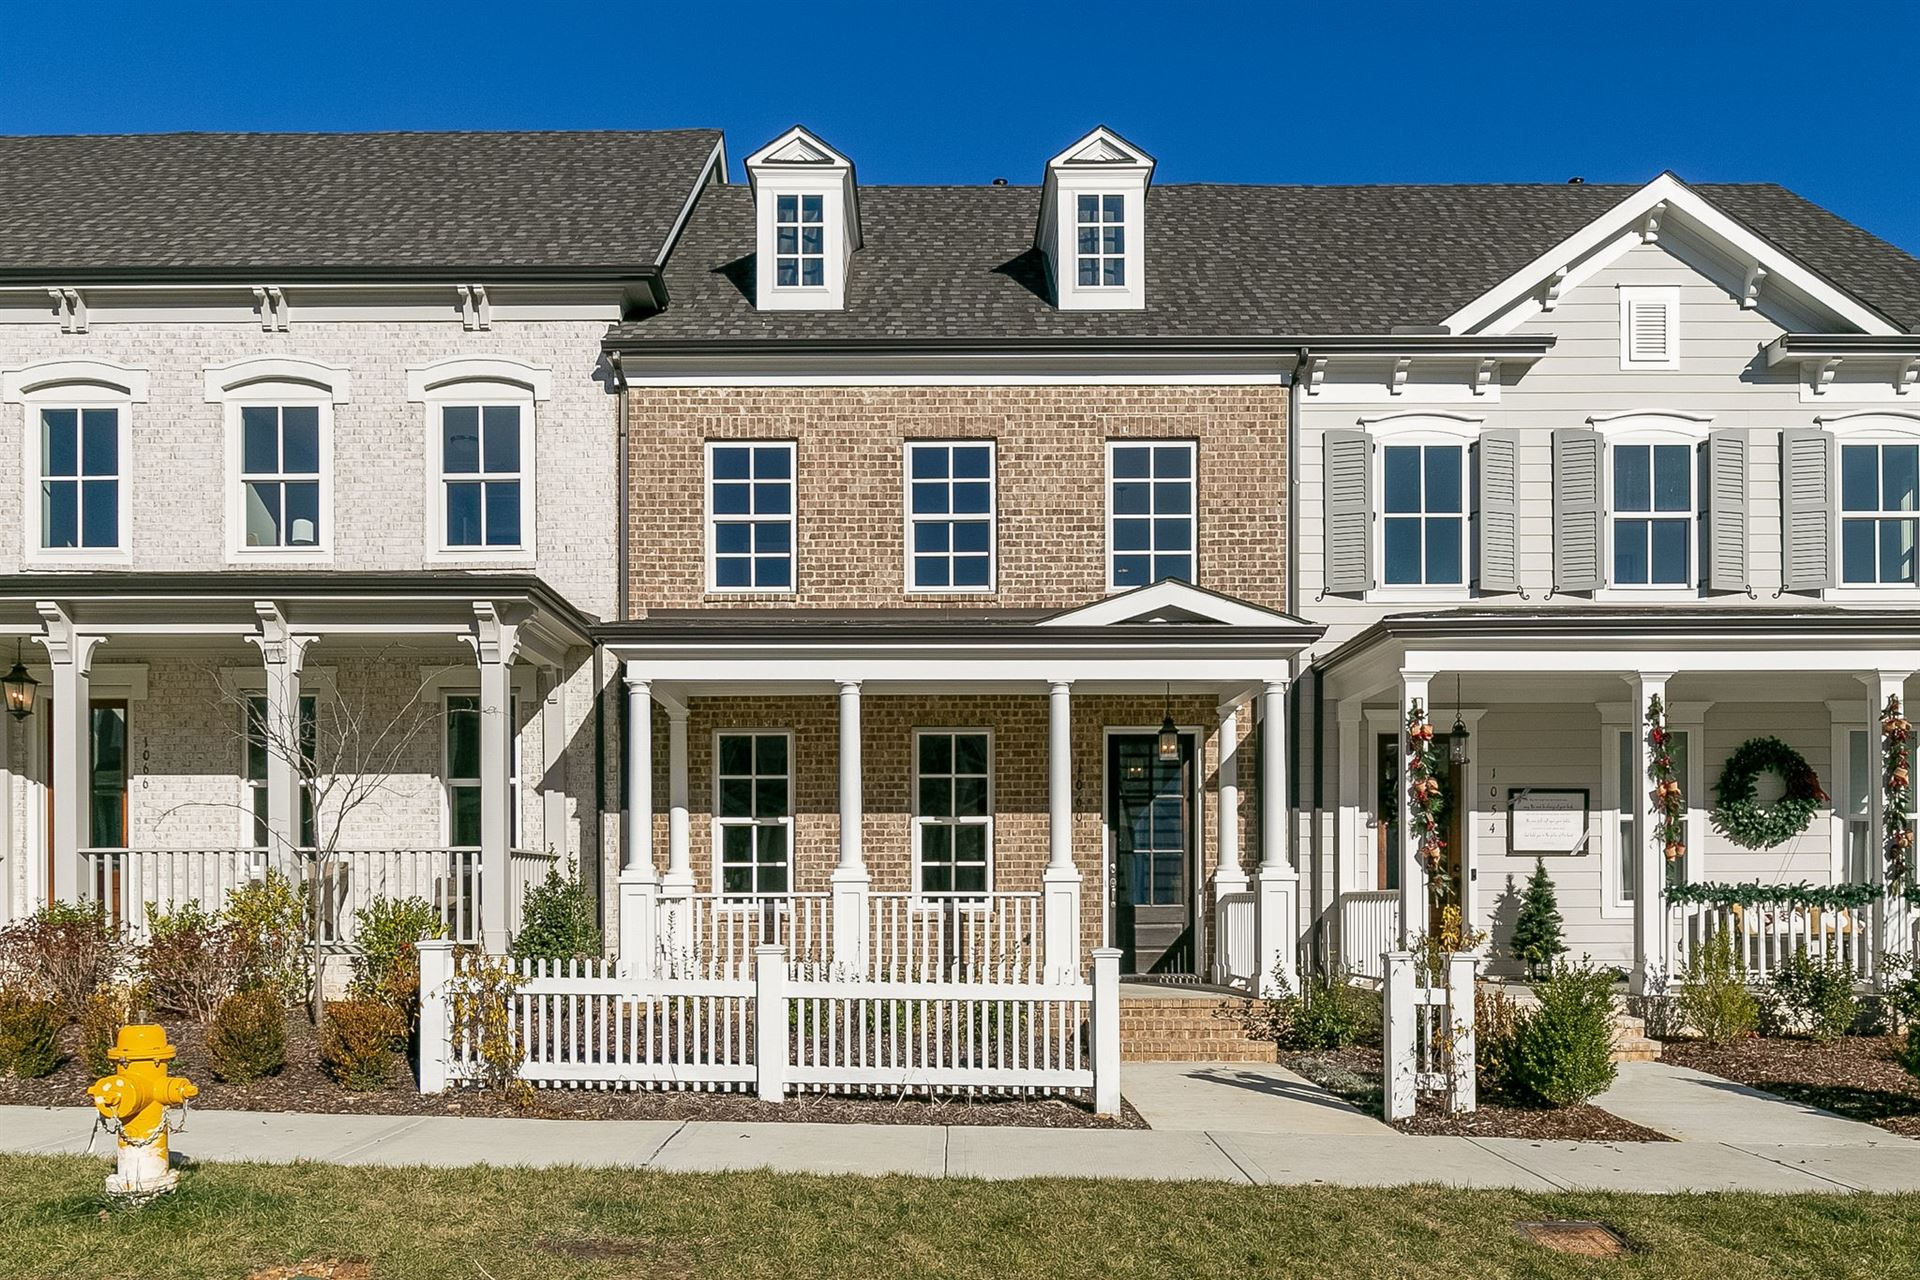 Photo of 1060 Beckwith Street, WH # 1999, Franklin, TN 37064 (MLS # 2077244)